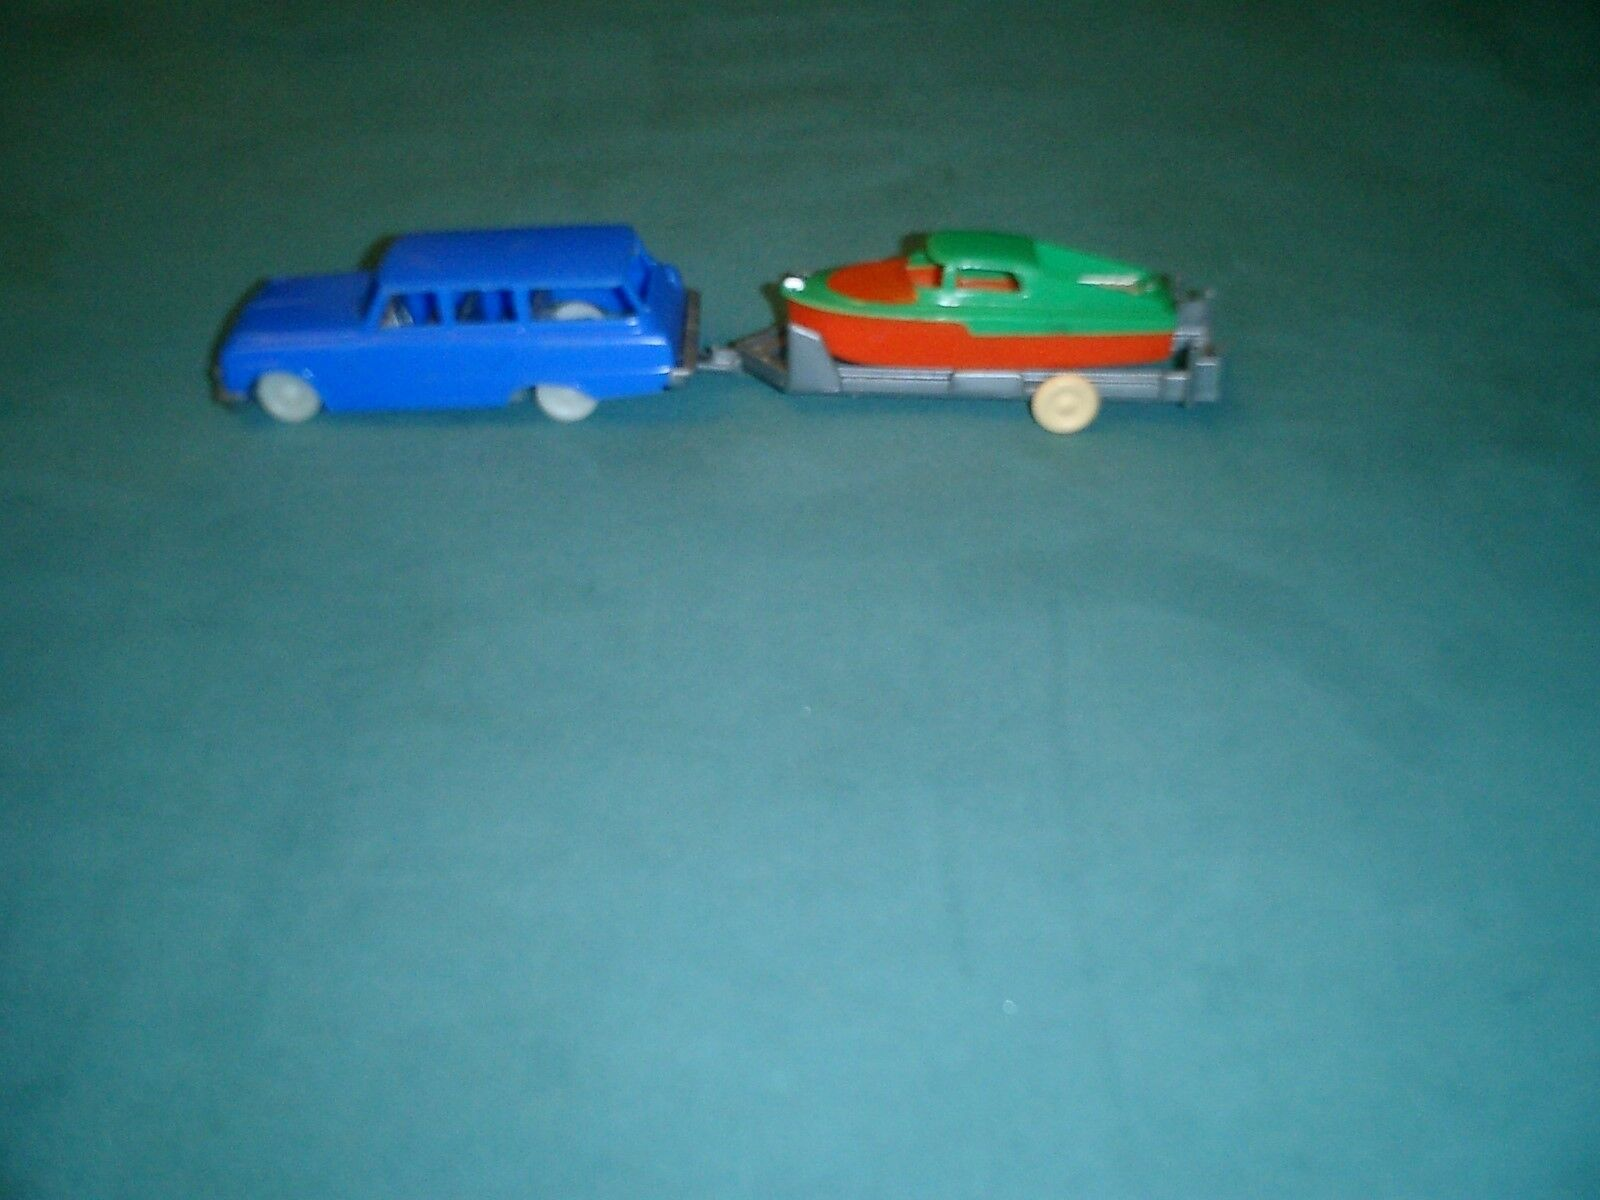 VINTAGE PLASTIC TOY STATION WAGON BOAT& TRAILER - 1960'S 1960'S 1960'S - MADE IN W. GERMANY 432989